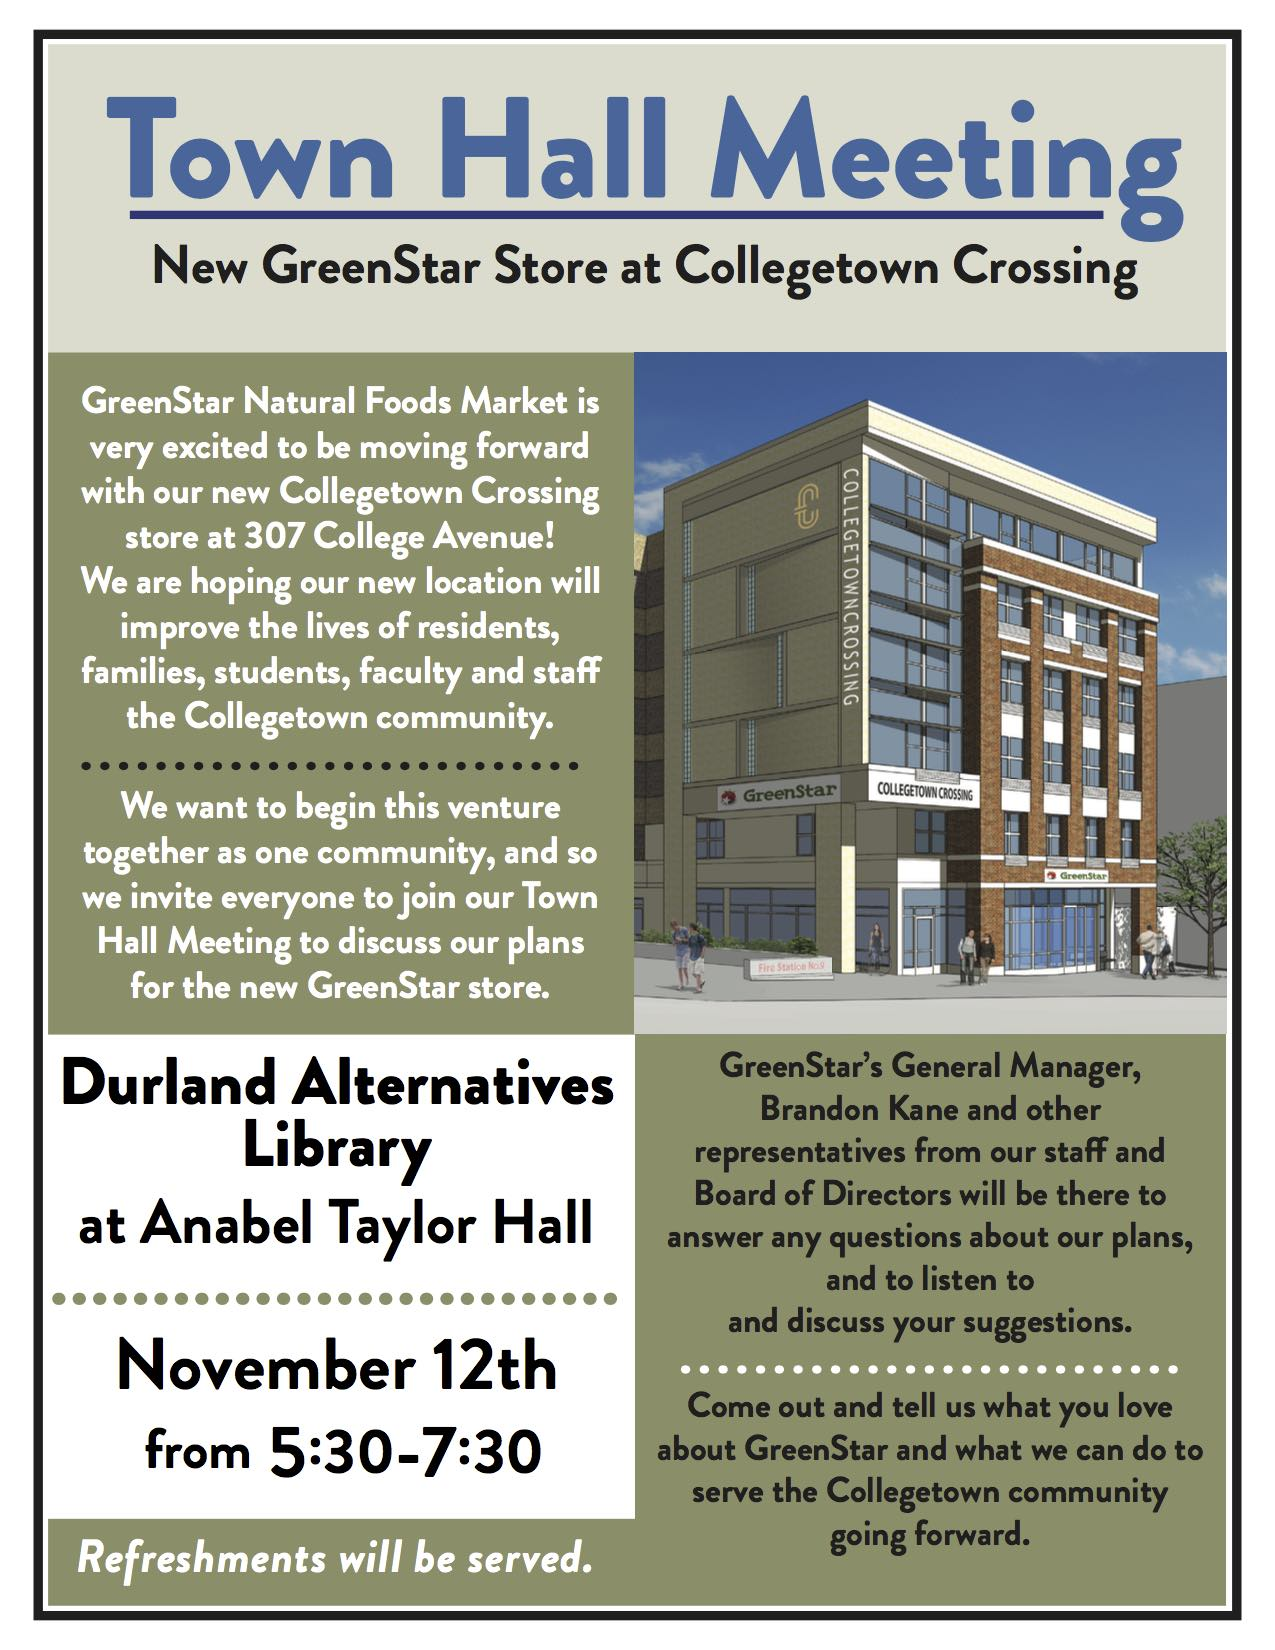 Town Hall Meeting : GreenStar in Collegetown - Durland